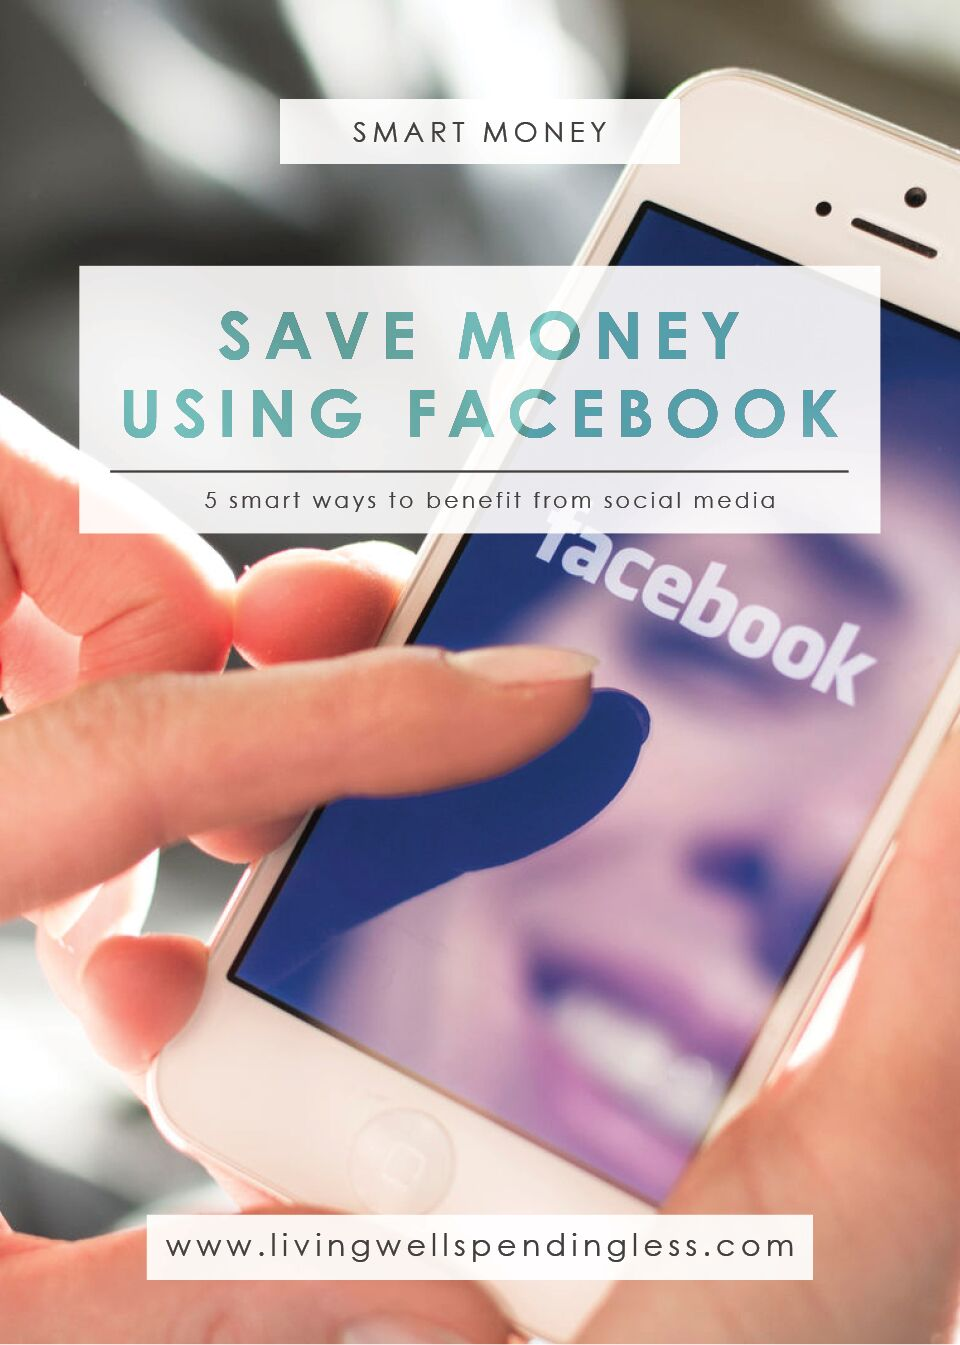 How to Use Facebook to Save Money   Saving Money with Social Media